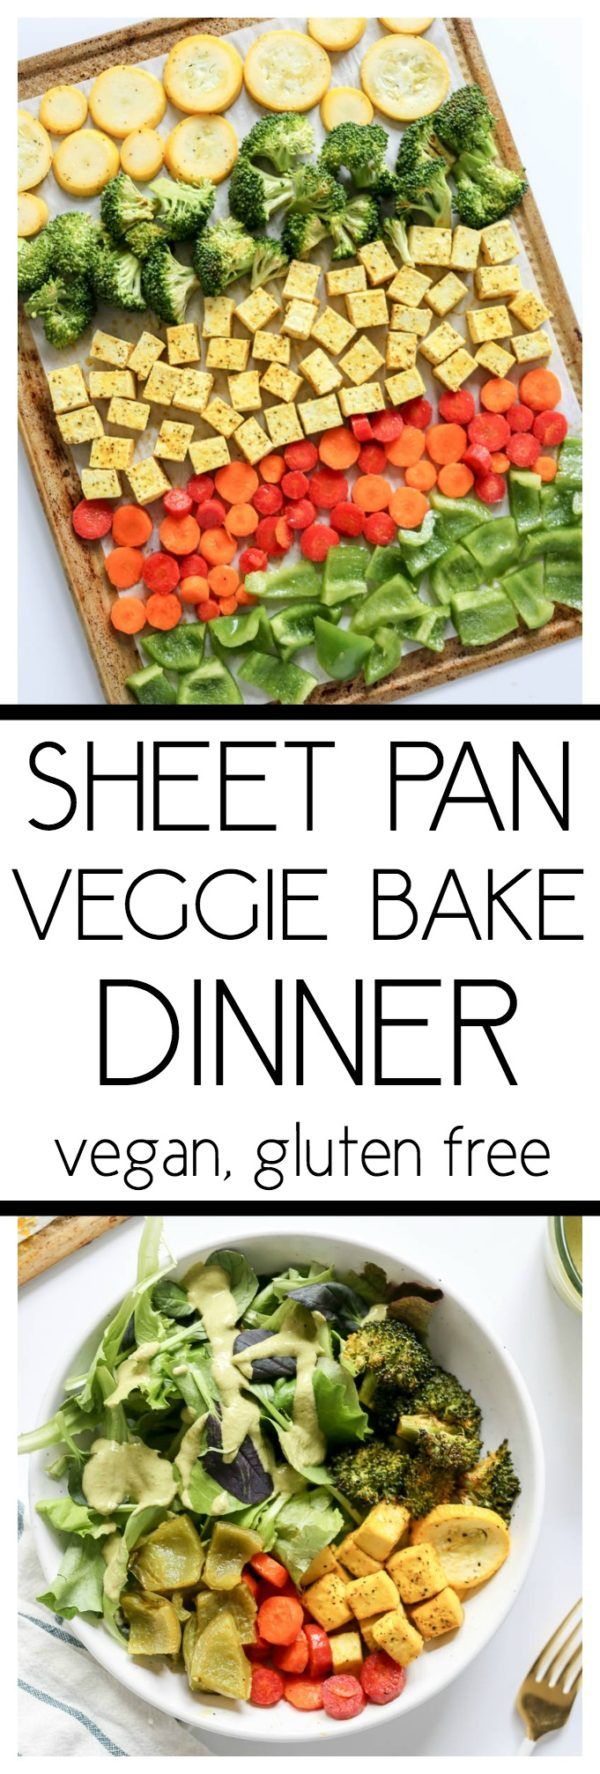 Sheet Pan Veggie Bake Dinner